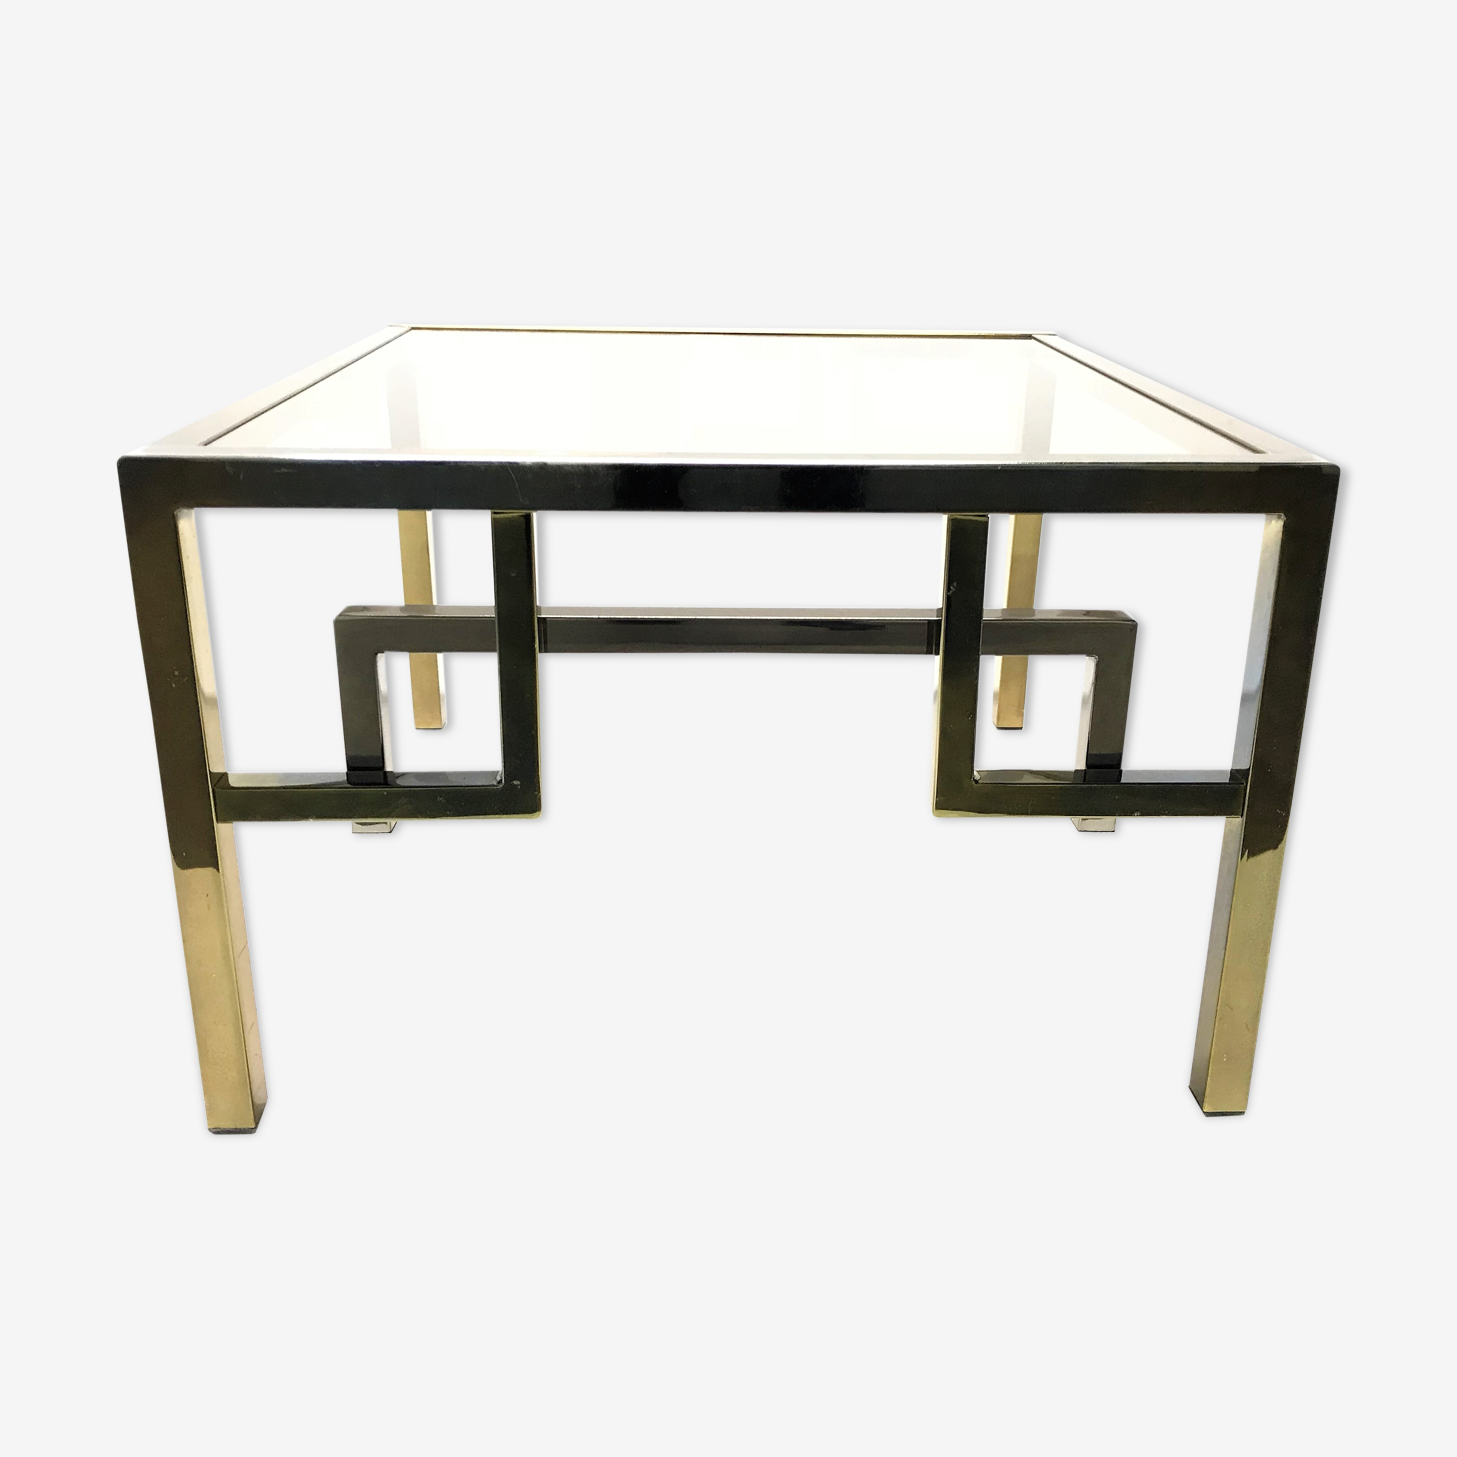 Vintage brass coffee table, 1970